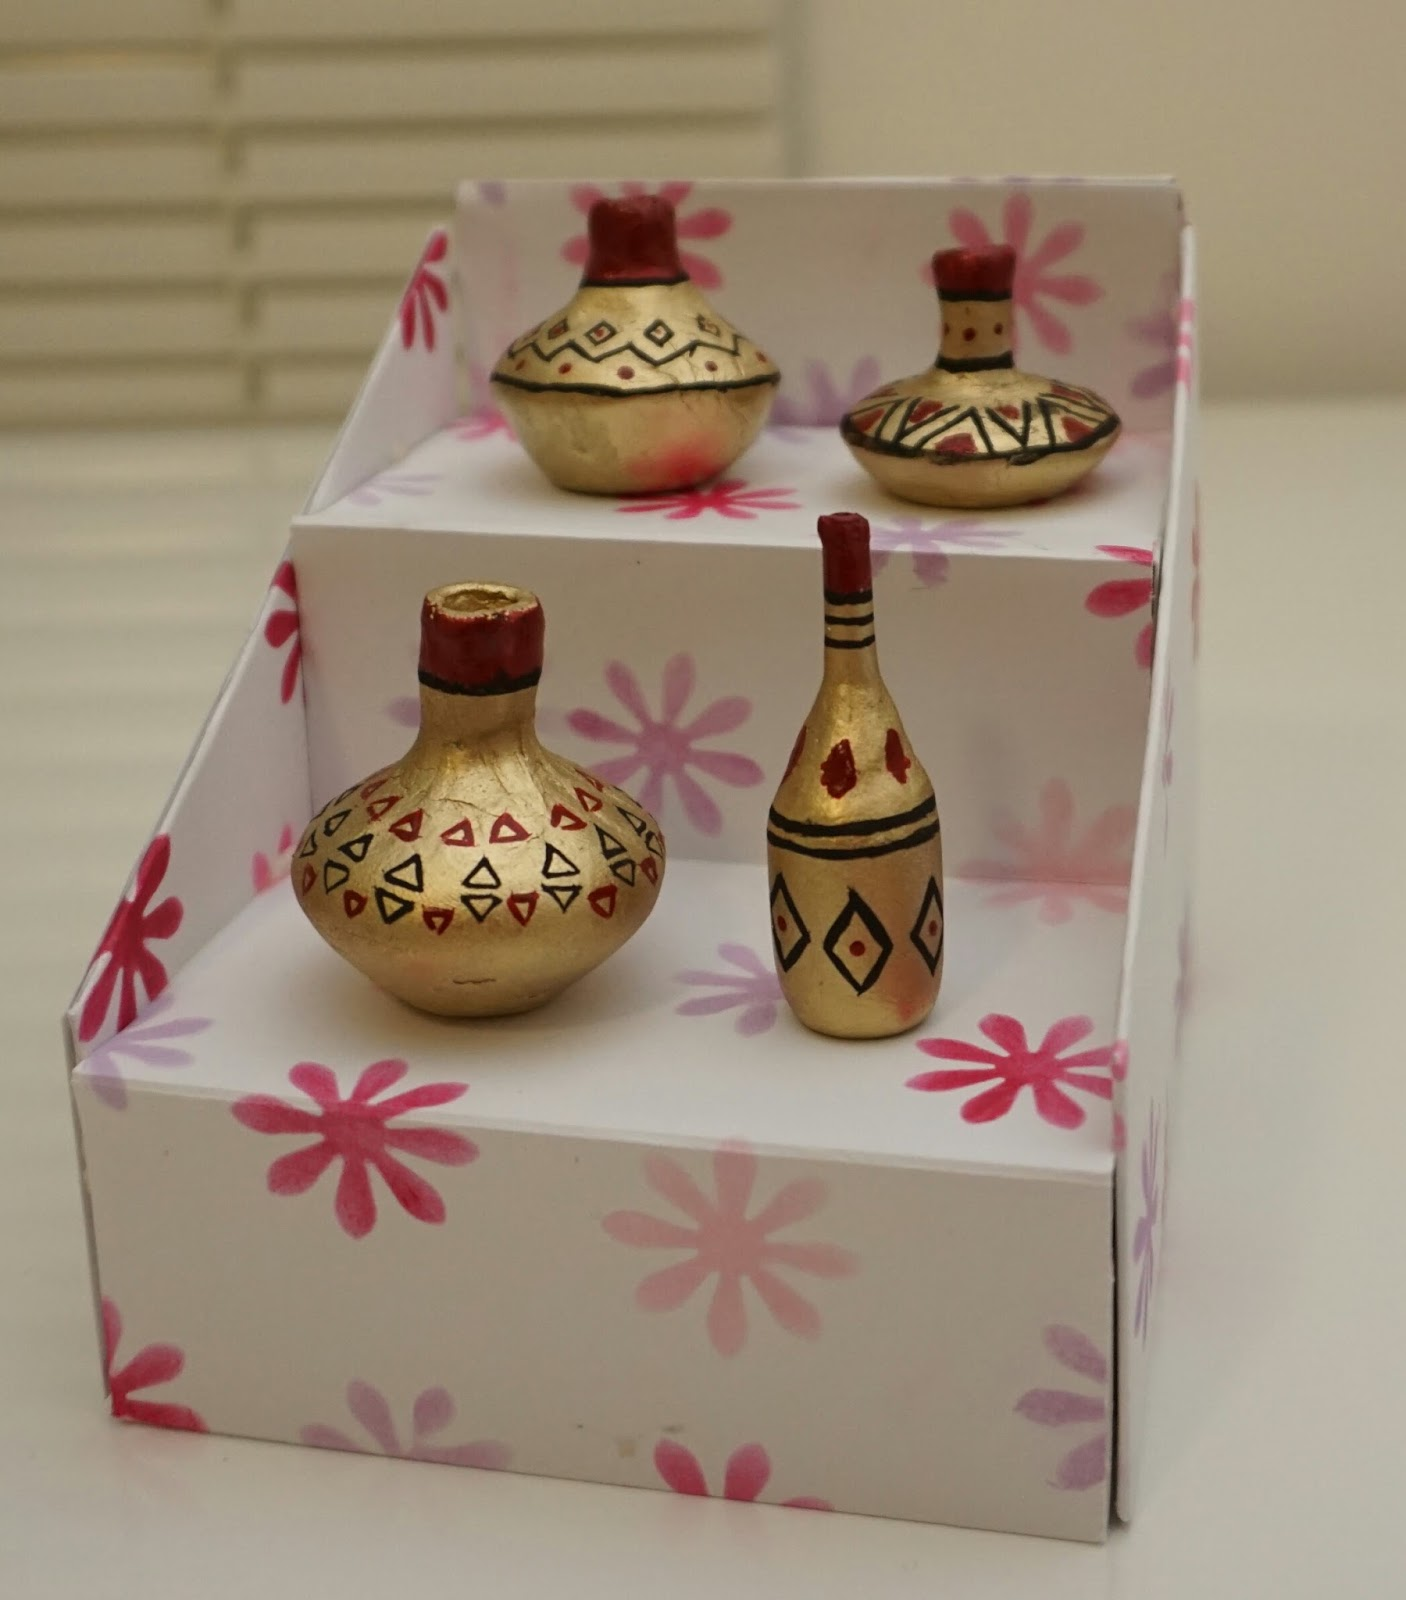 Made From Clay Pots Crafts: Crafts And Crafts Only: Miniature Clay Pots